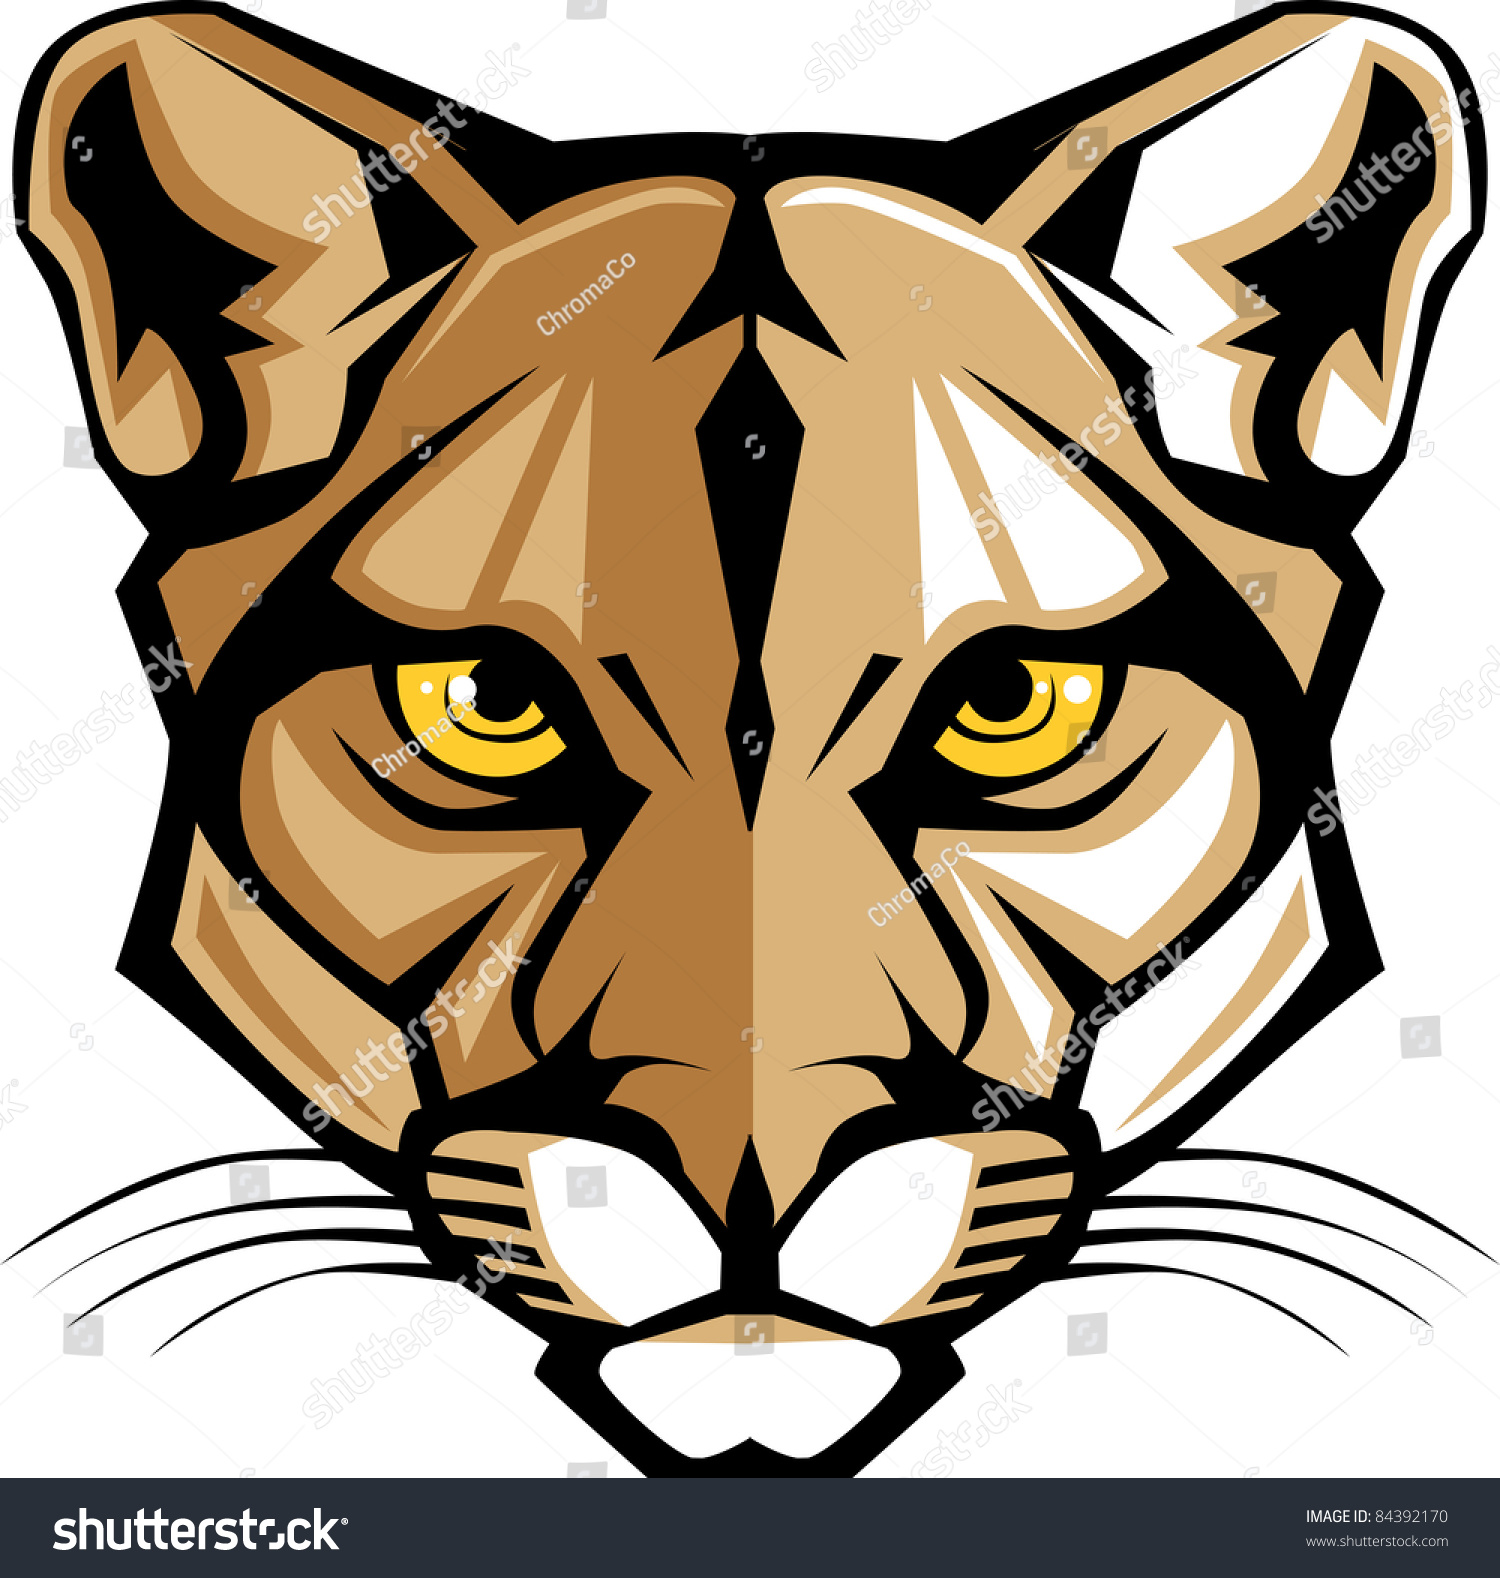 Growling Panther Face Stock Vector 585261455: Cougar Panther Mascot Head Vector Graphic Stock Vector